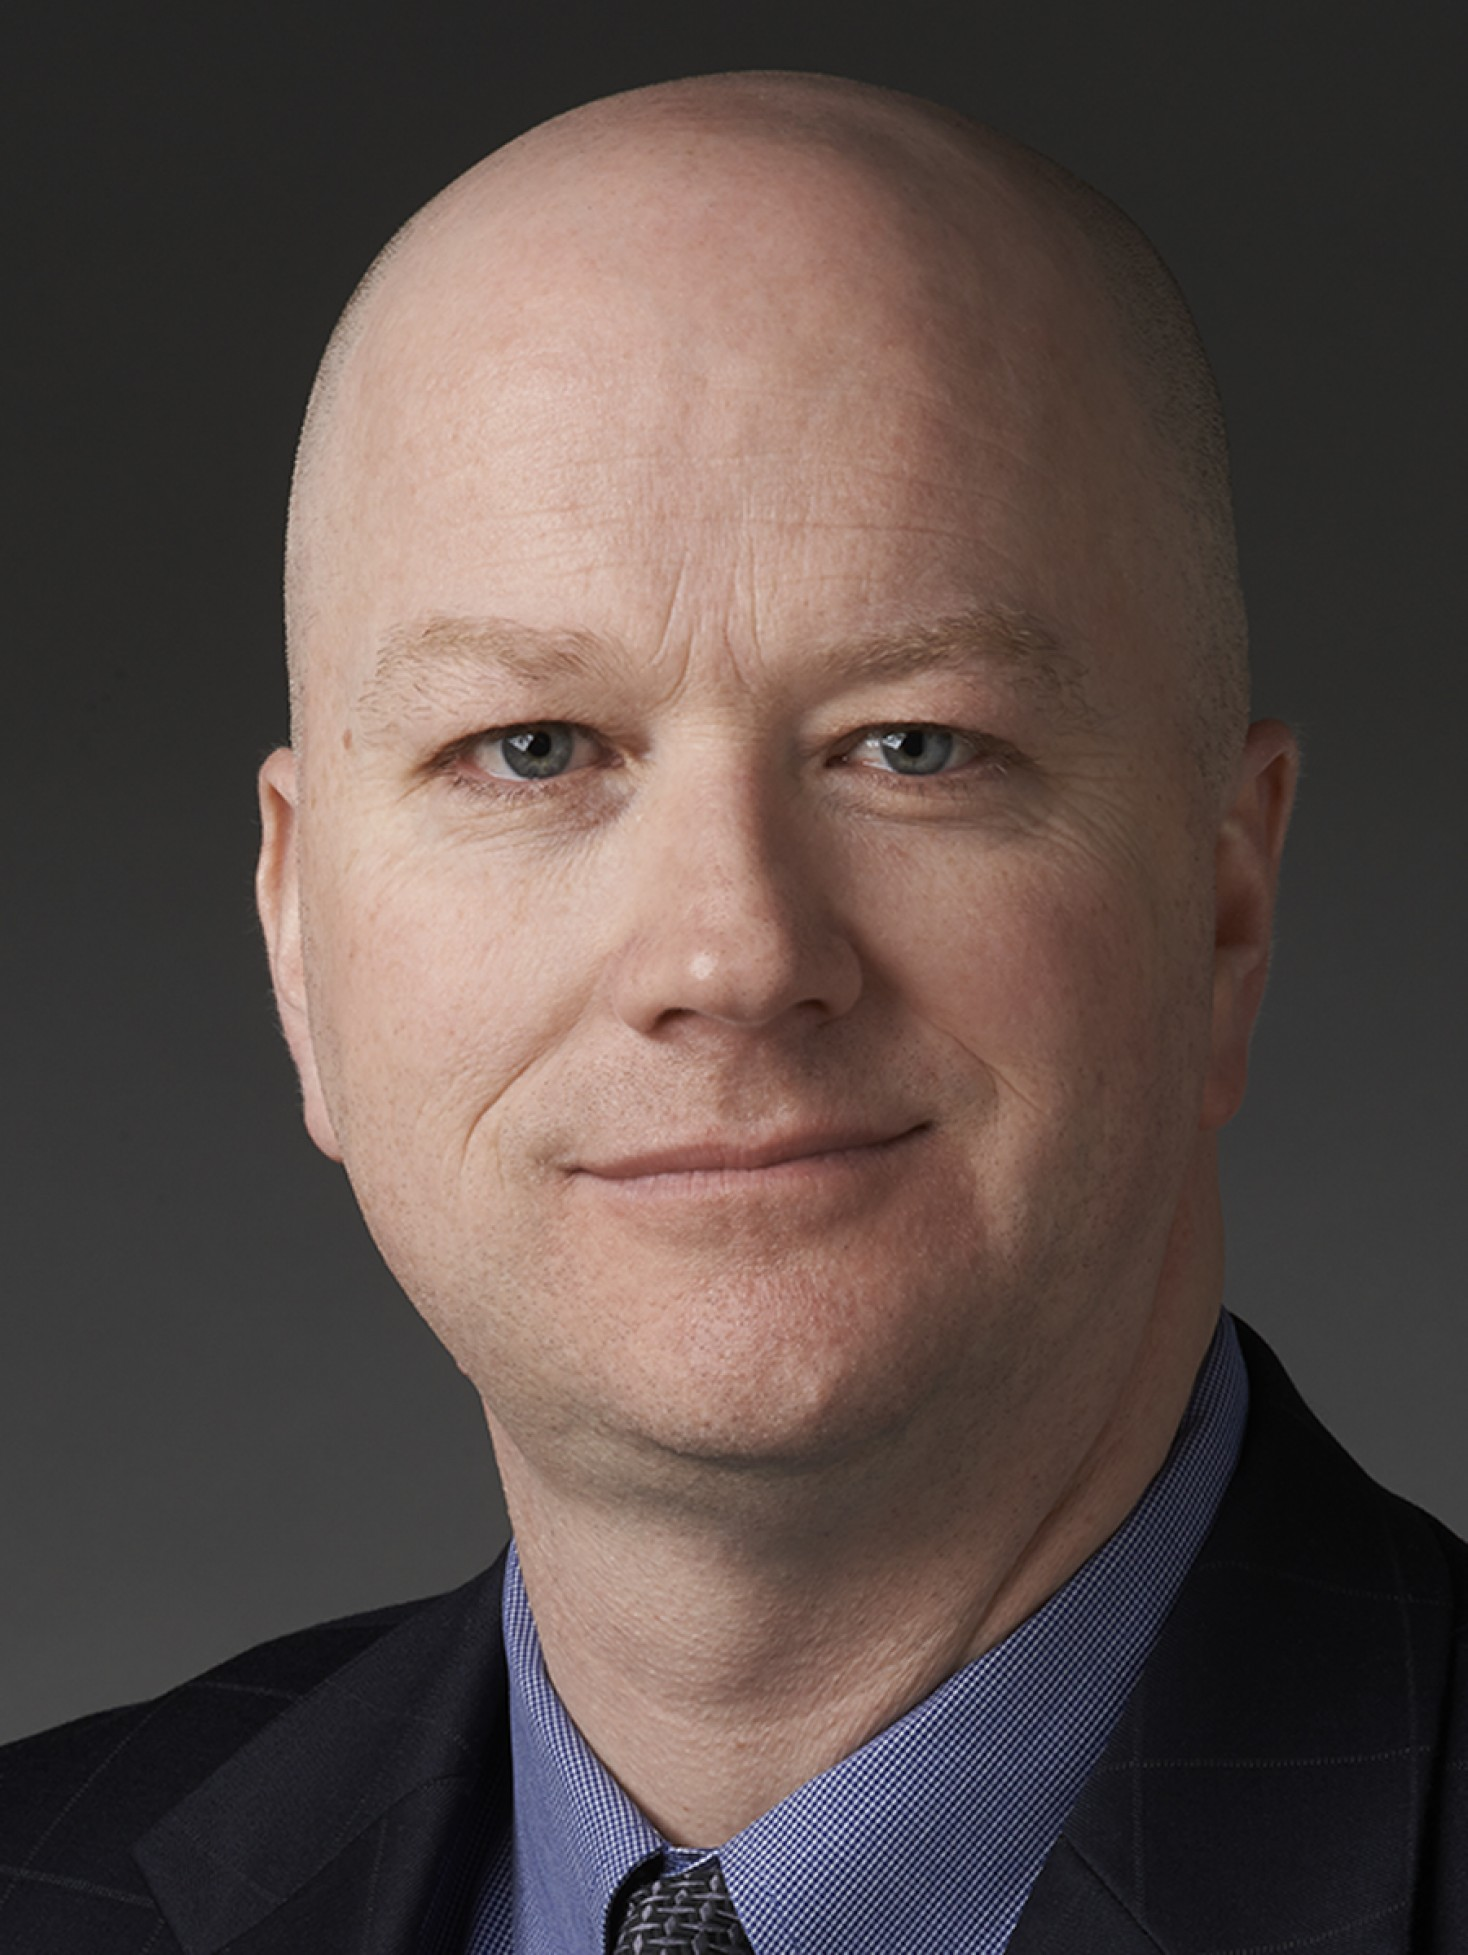 Fraser Institute Executive VP Jason Clemens to provide keynote at 2013 NLEC Conference Nov 14th